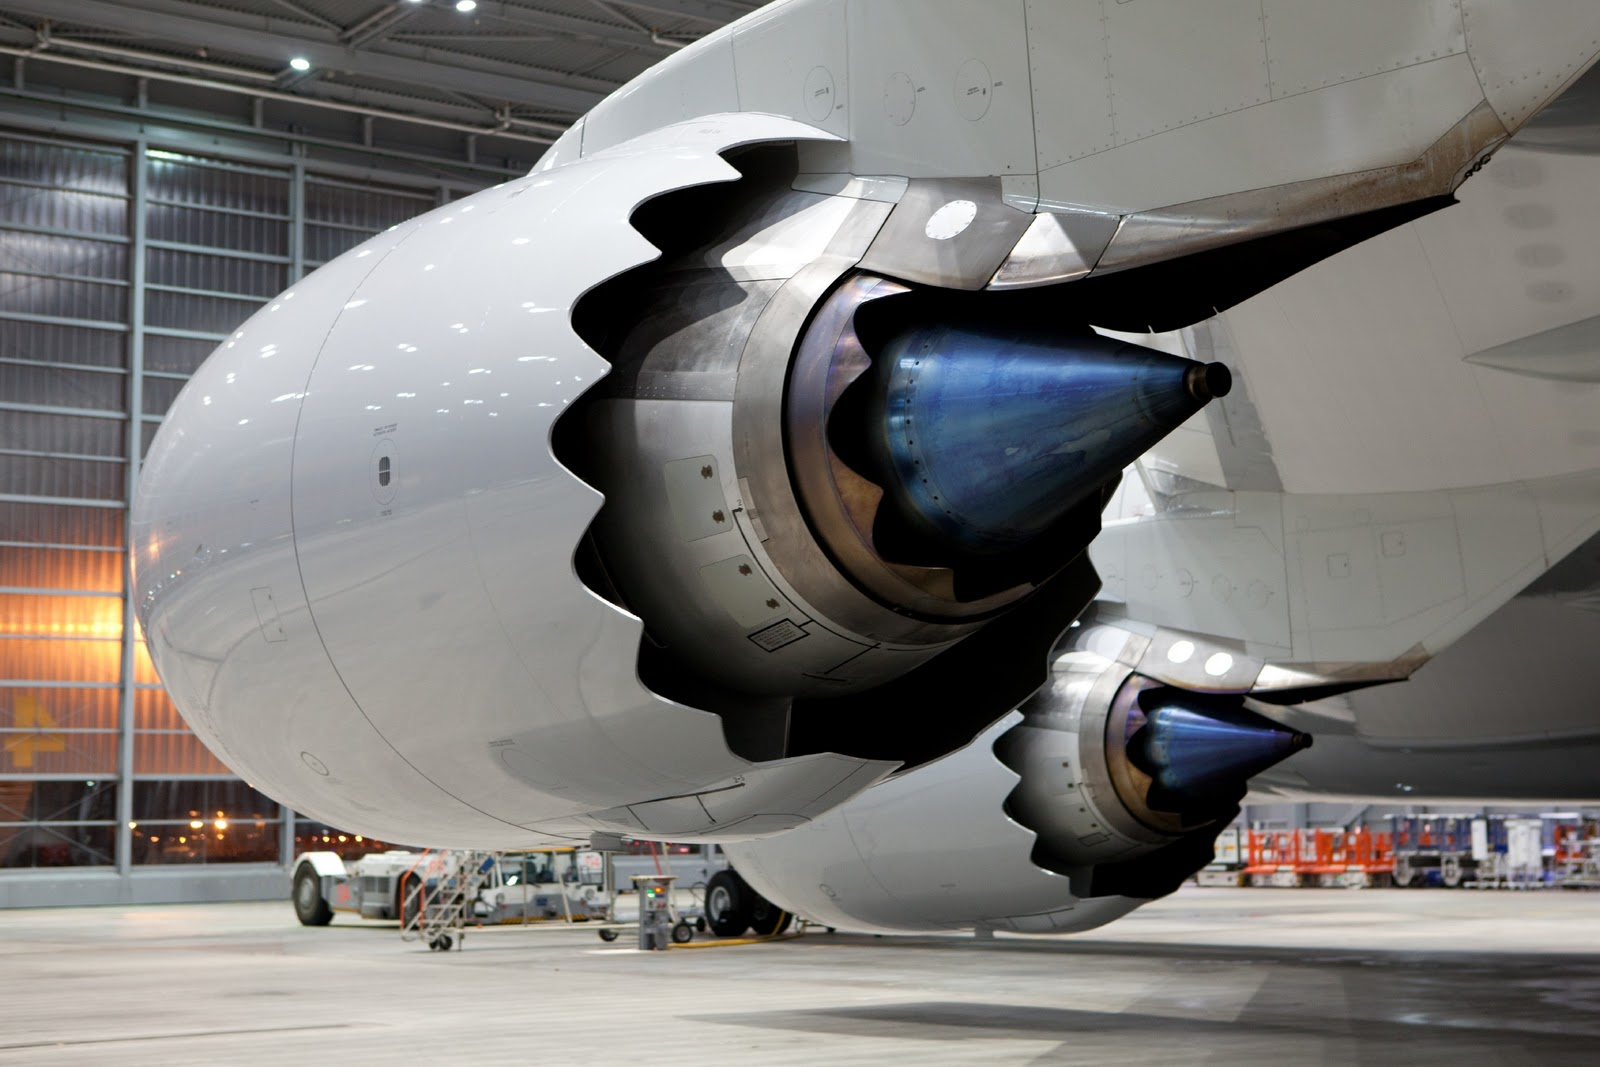 Pic new posts wallpaper 747 - Jet engine wallpaper ...